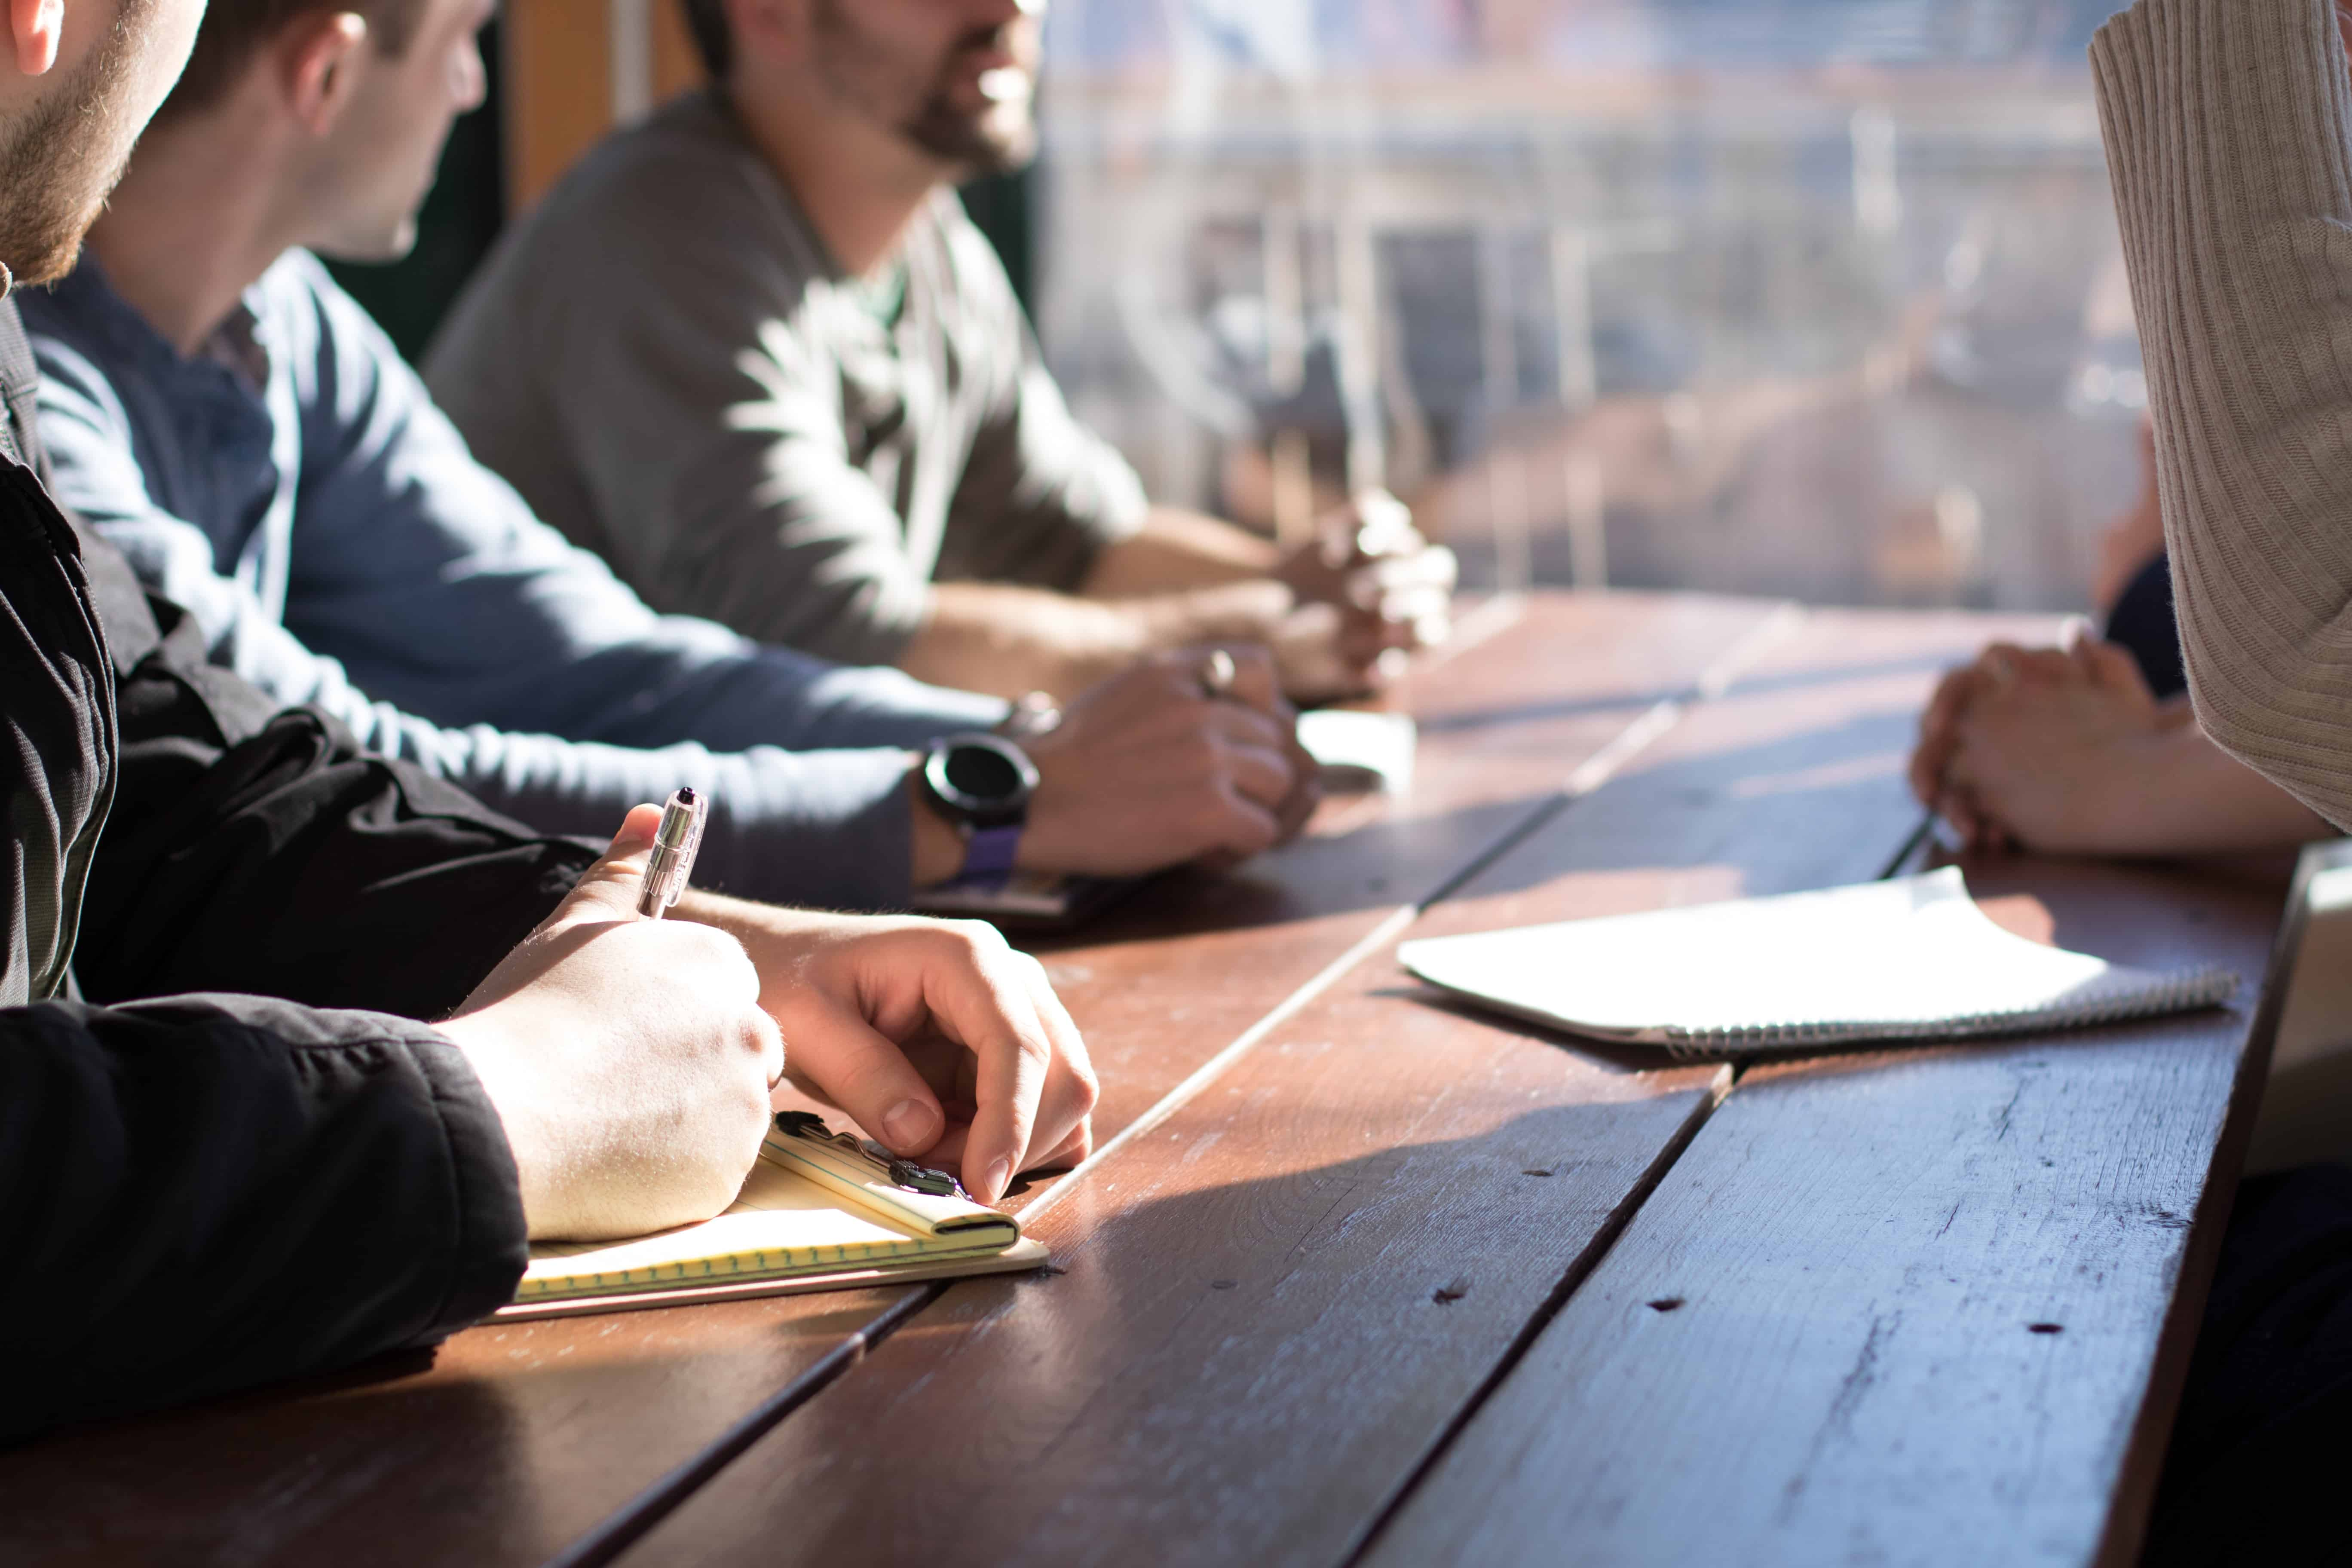 When to remove a board member and how to handle it